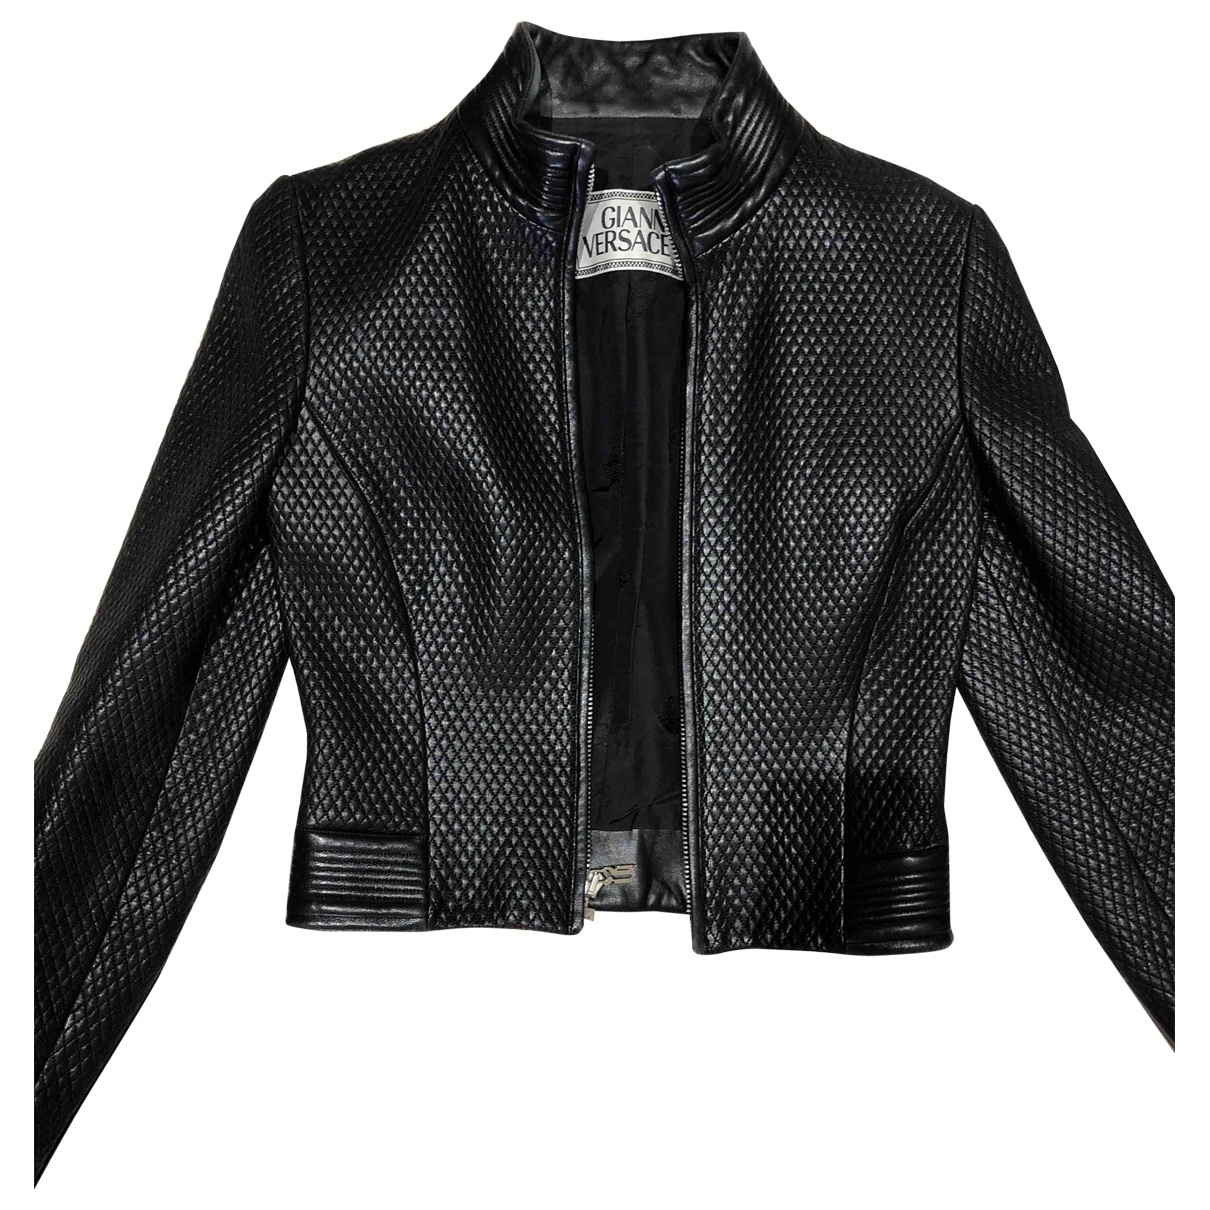 Gianni Versace \N Black Leather jacket for Women S International